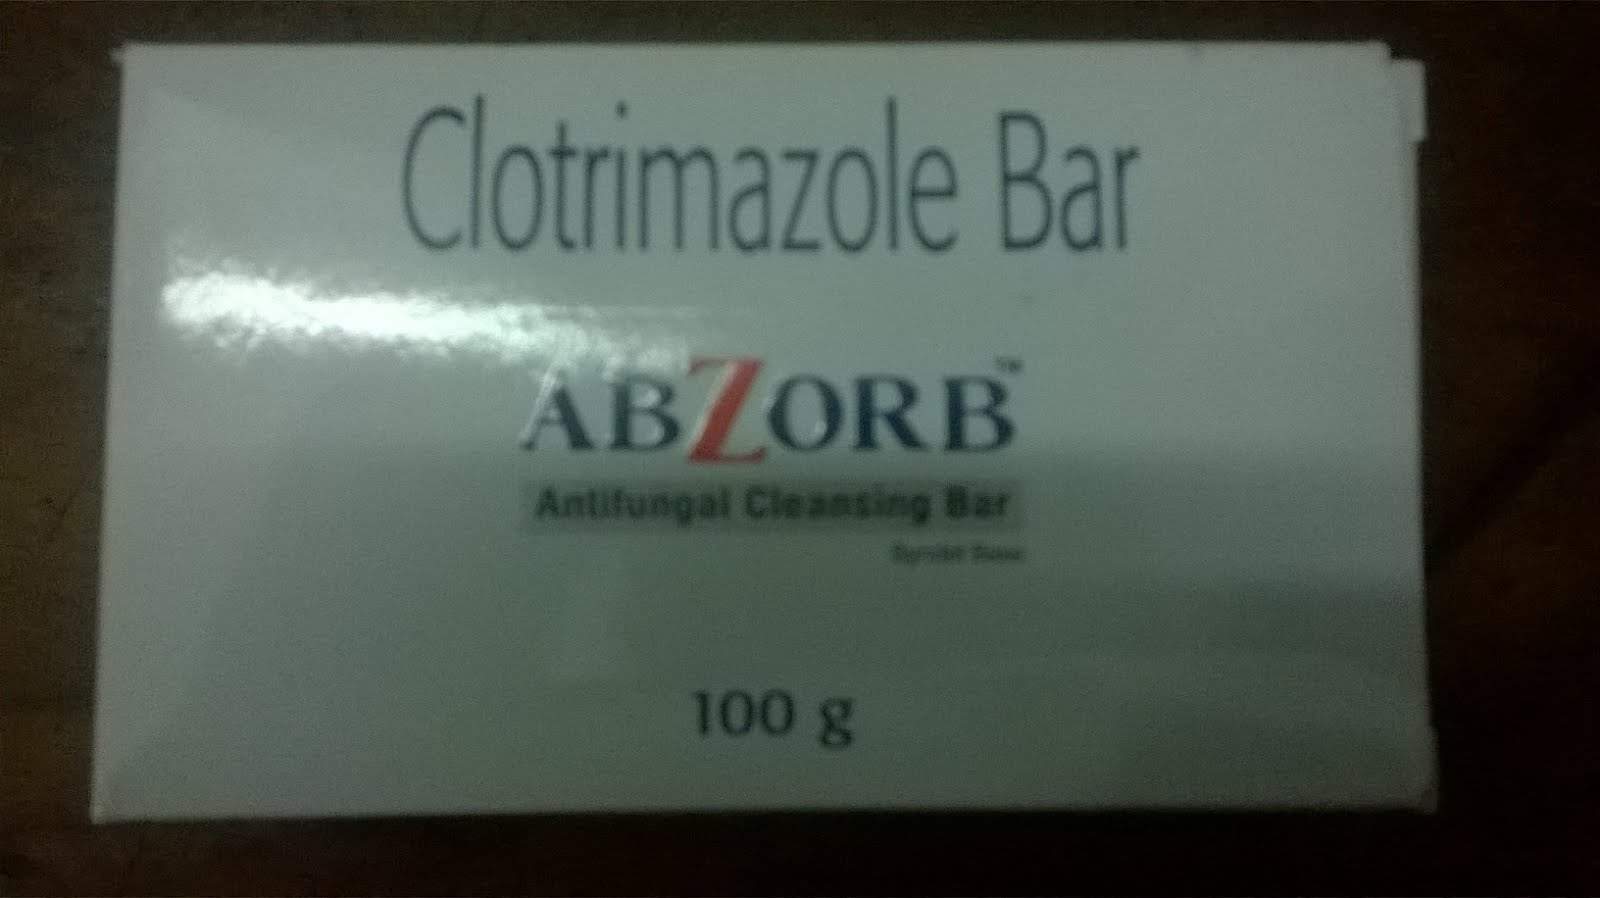 ABZORB Clotrimazole Bar pack of 3